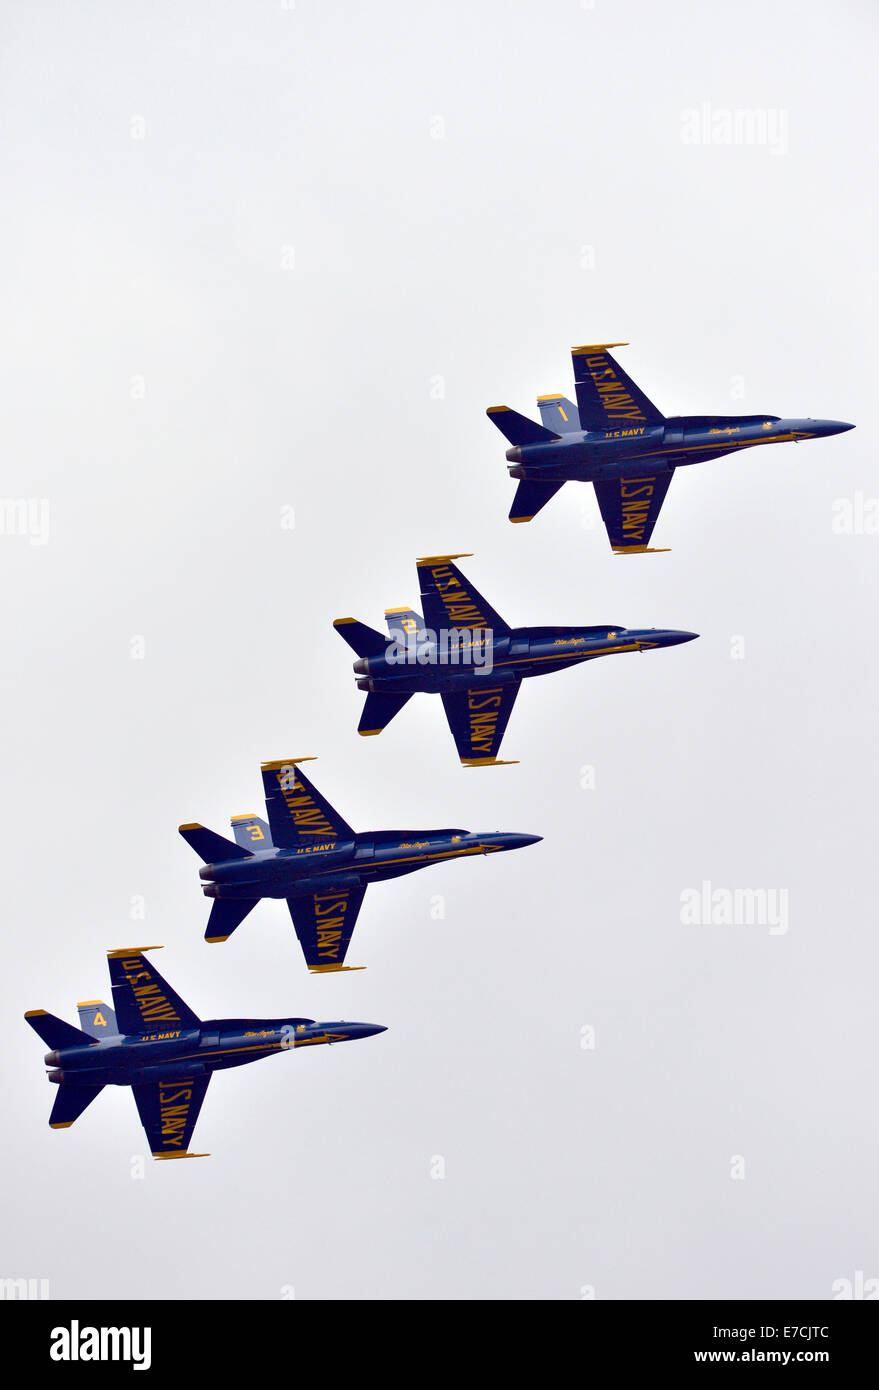 Baltimore, USA. 13th Sep, 2014. The U.S. Navy's Blue Angels aerobatic team performs during a celebration for - Stock Image